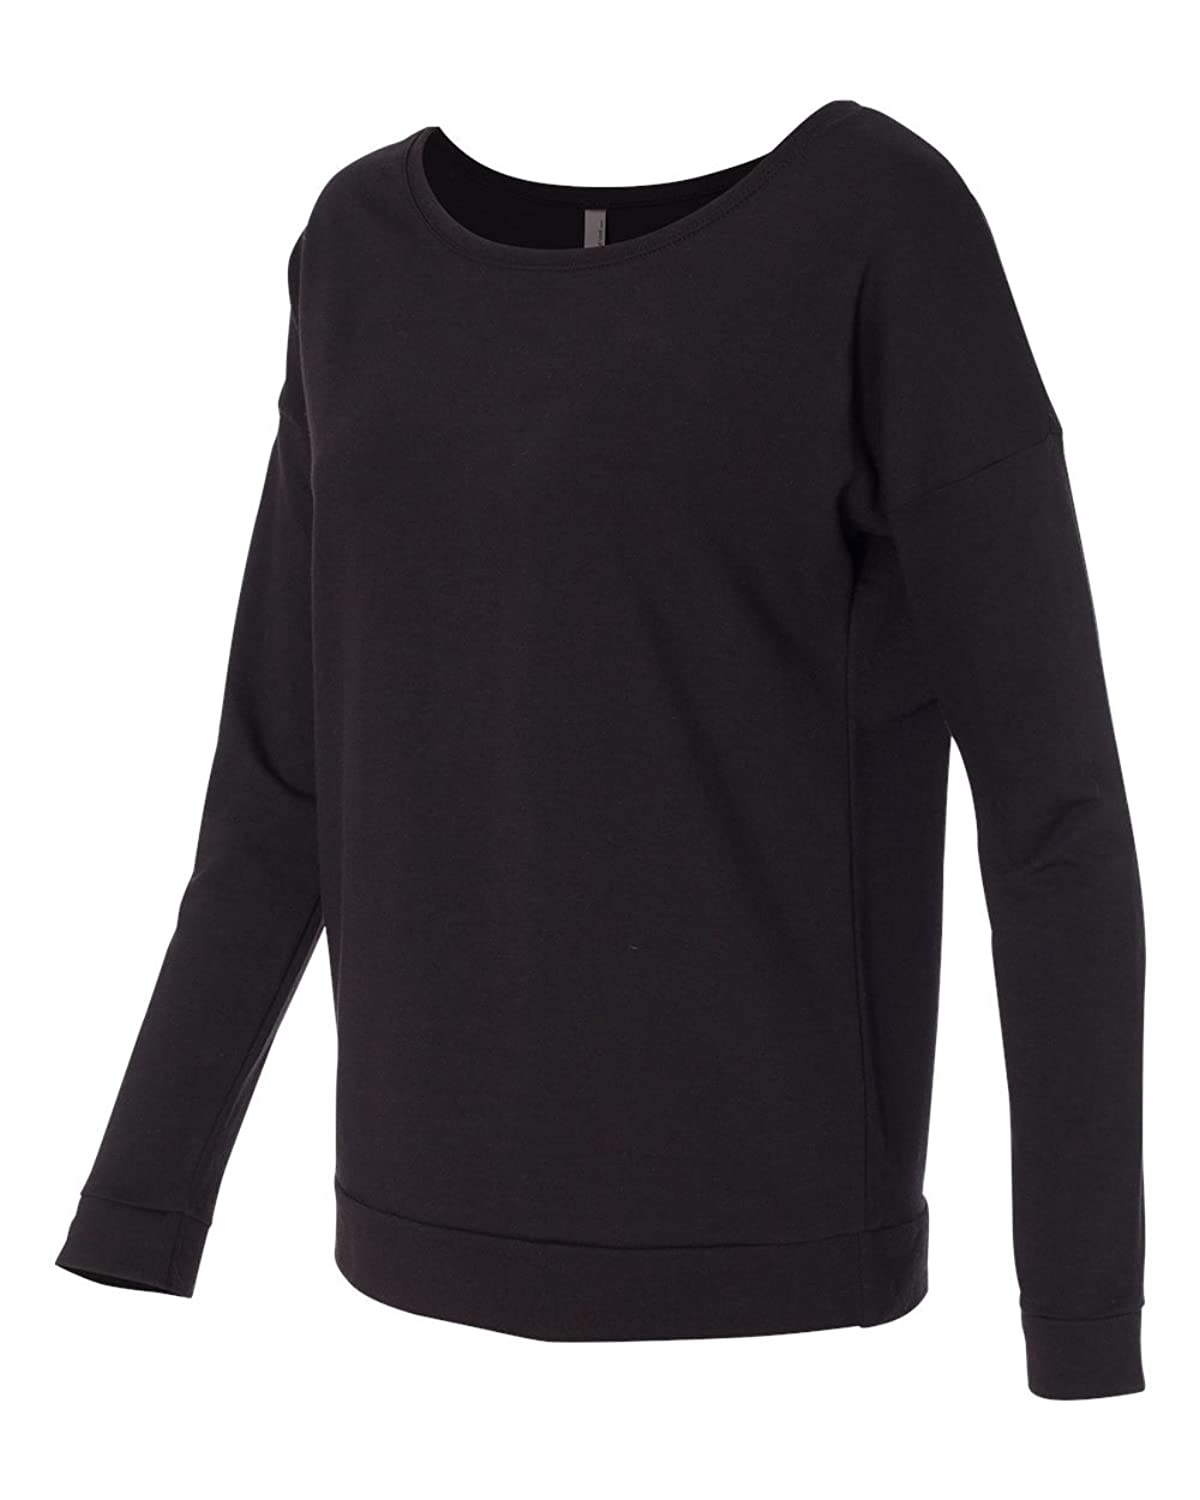 Black t shirt for ladies - Next Level Womens Terry Long Sleeve Scoop Tee 6931 At Amazon Women S Clothing Store